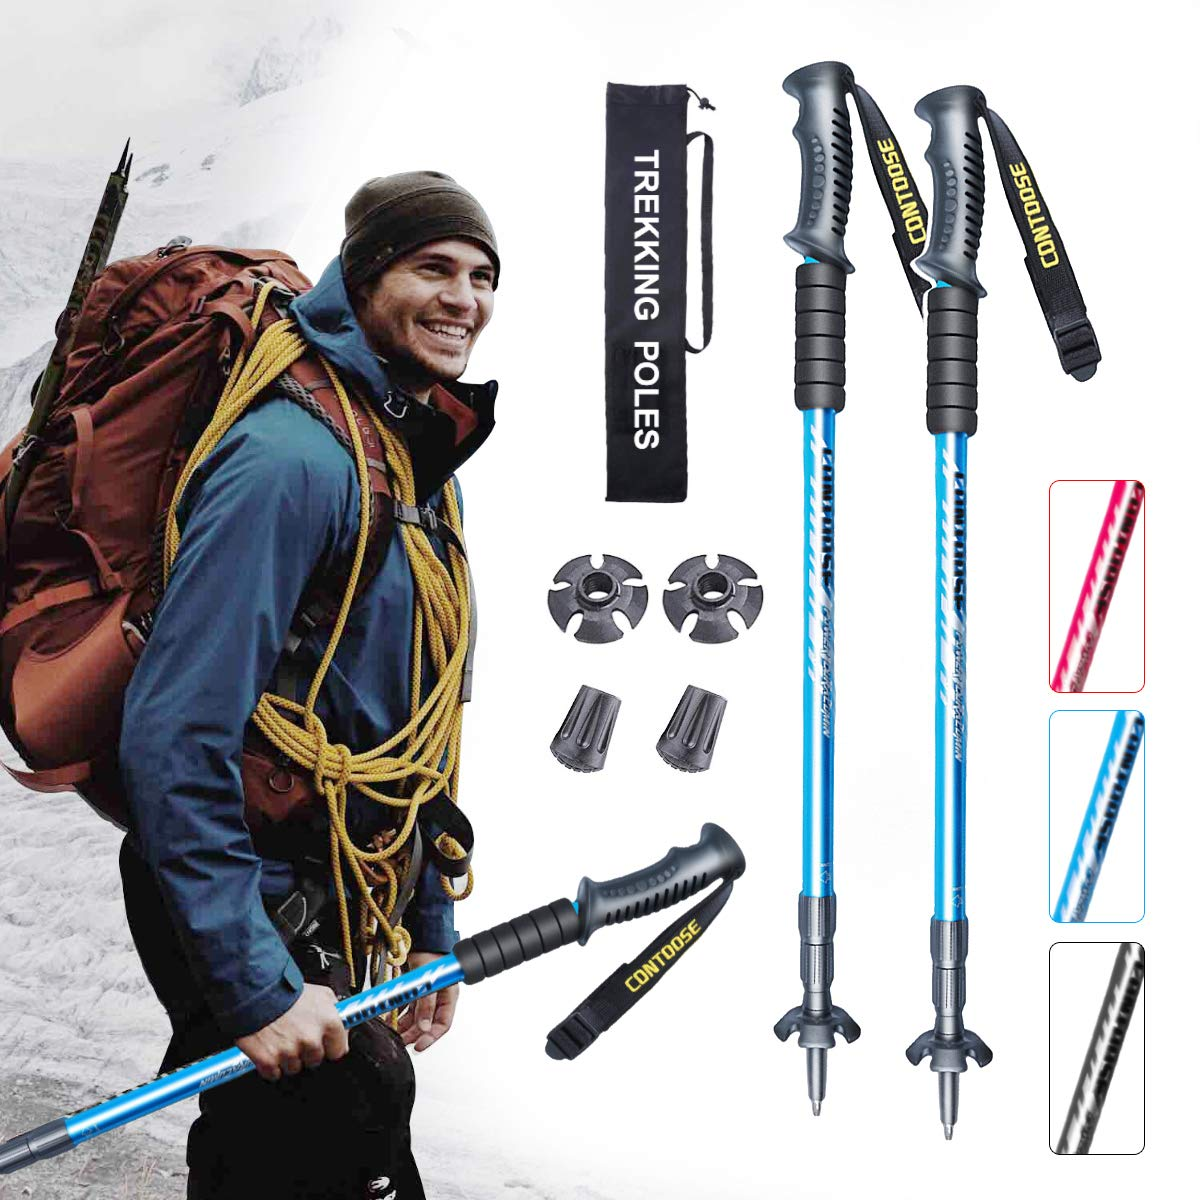 XJD Trekking Pole 2 Pack Telescopic Hiking Poles Aluminium 6061 With Antishock And Quick Lock System Ultralight Adjustable for Hiking Camping Mountaining Backpacking Walking Trekking